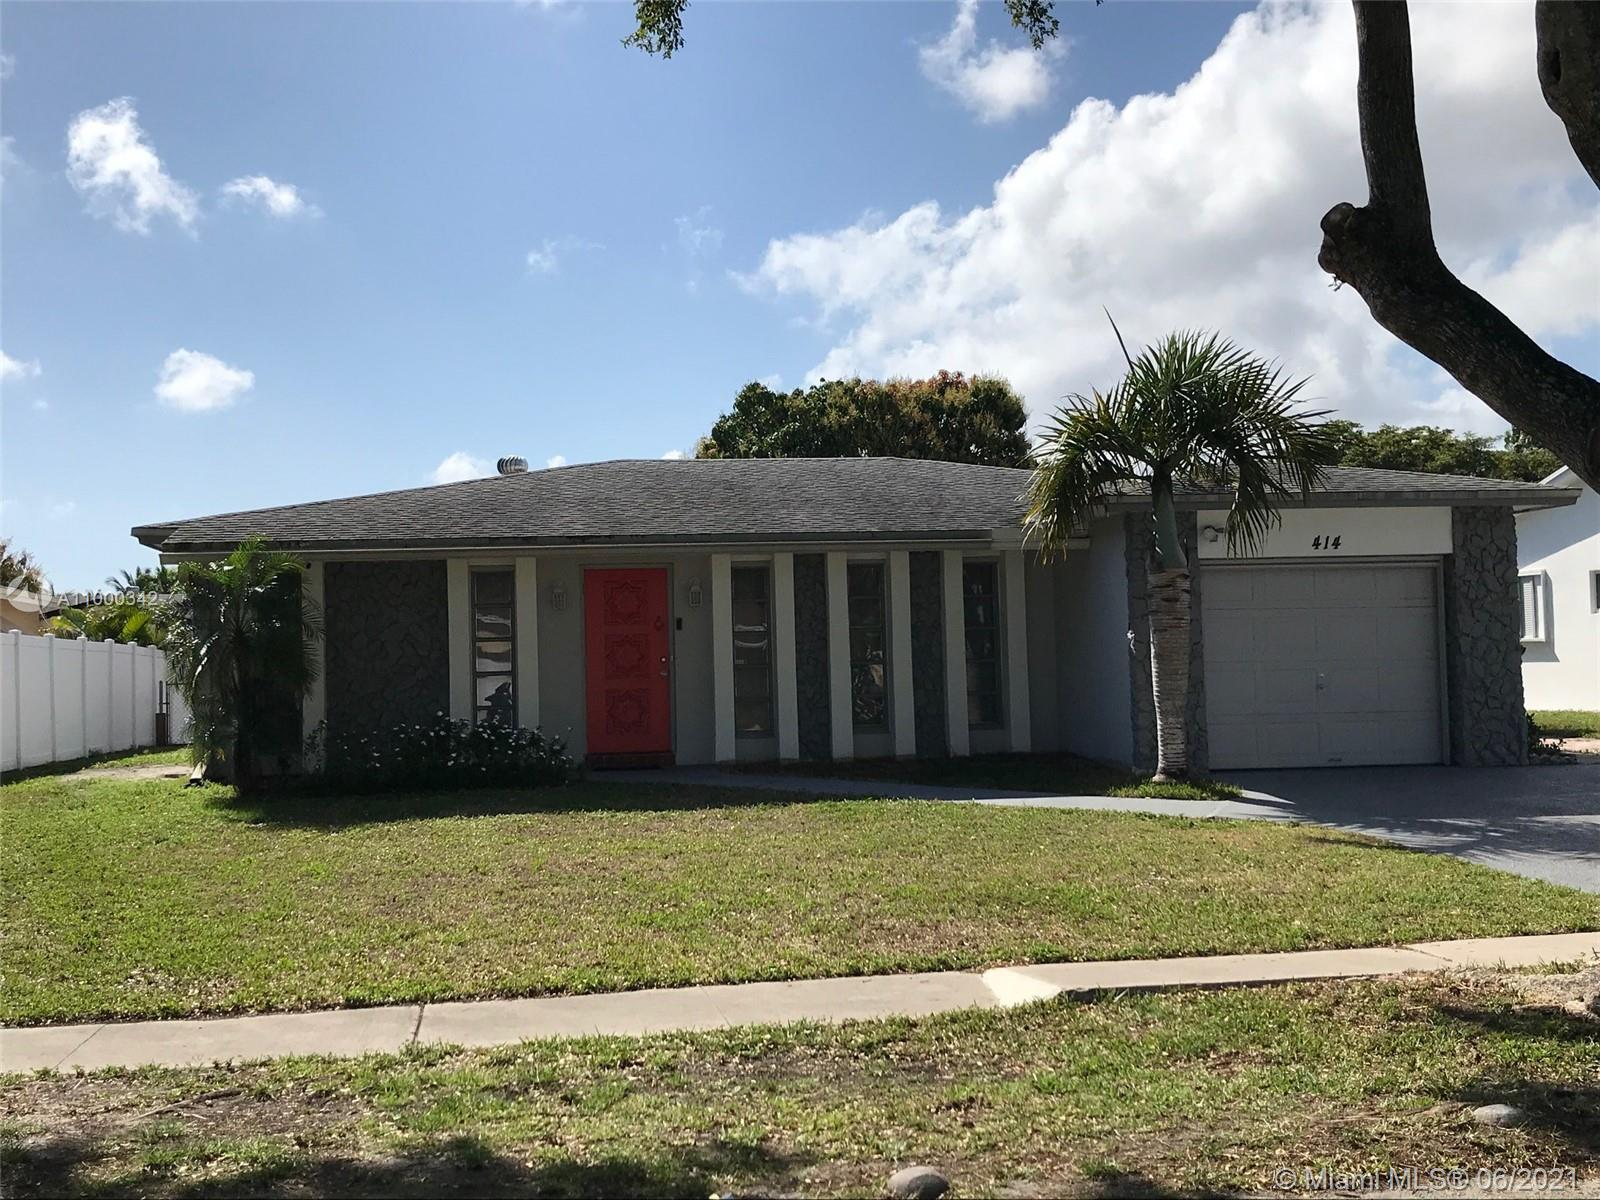 BEAUTIFUL 3 BED, 2 BATH HOME WITH GARAGE, PLUS A CLOSED-IN PATIO W/AIR CONDITIONING,ROOM MEASURES 28FT X 17FT, YOU WILL LIKE THIS ROOM WITH MANY WINDOWS ,VERY BRIGHT,  PLUS A VERY LARGE WOOD DECK, A PLACE TO ENTERTAIN AND RELAX. (LOOK AT  PICS), HOUSE FEATURES STAINLESS APPLIANCES,SPACIOUS ROOMS,TILE AND ENGINEERED WOOD FLOORS,WASHER, DRYER. VERY CLOSE TO THE BEACH AND THE FT LAUDERDALE INTERNATIONAL AIRPORT, GULFSTREAM VILLAGE, AND THE AVENTURA MALL. DON'T MISS OUT ON THIS HOME, WON'T BE ON THE MARKET VERY LONG. NOTE: HOT TUB NOT INCLUDED IN SALE.